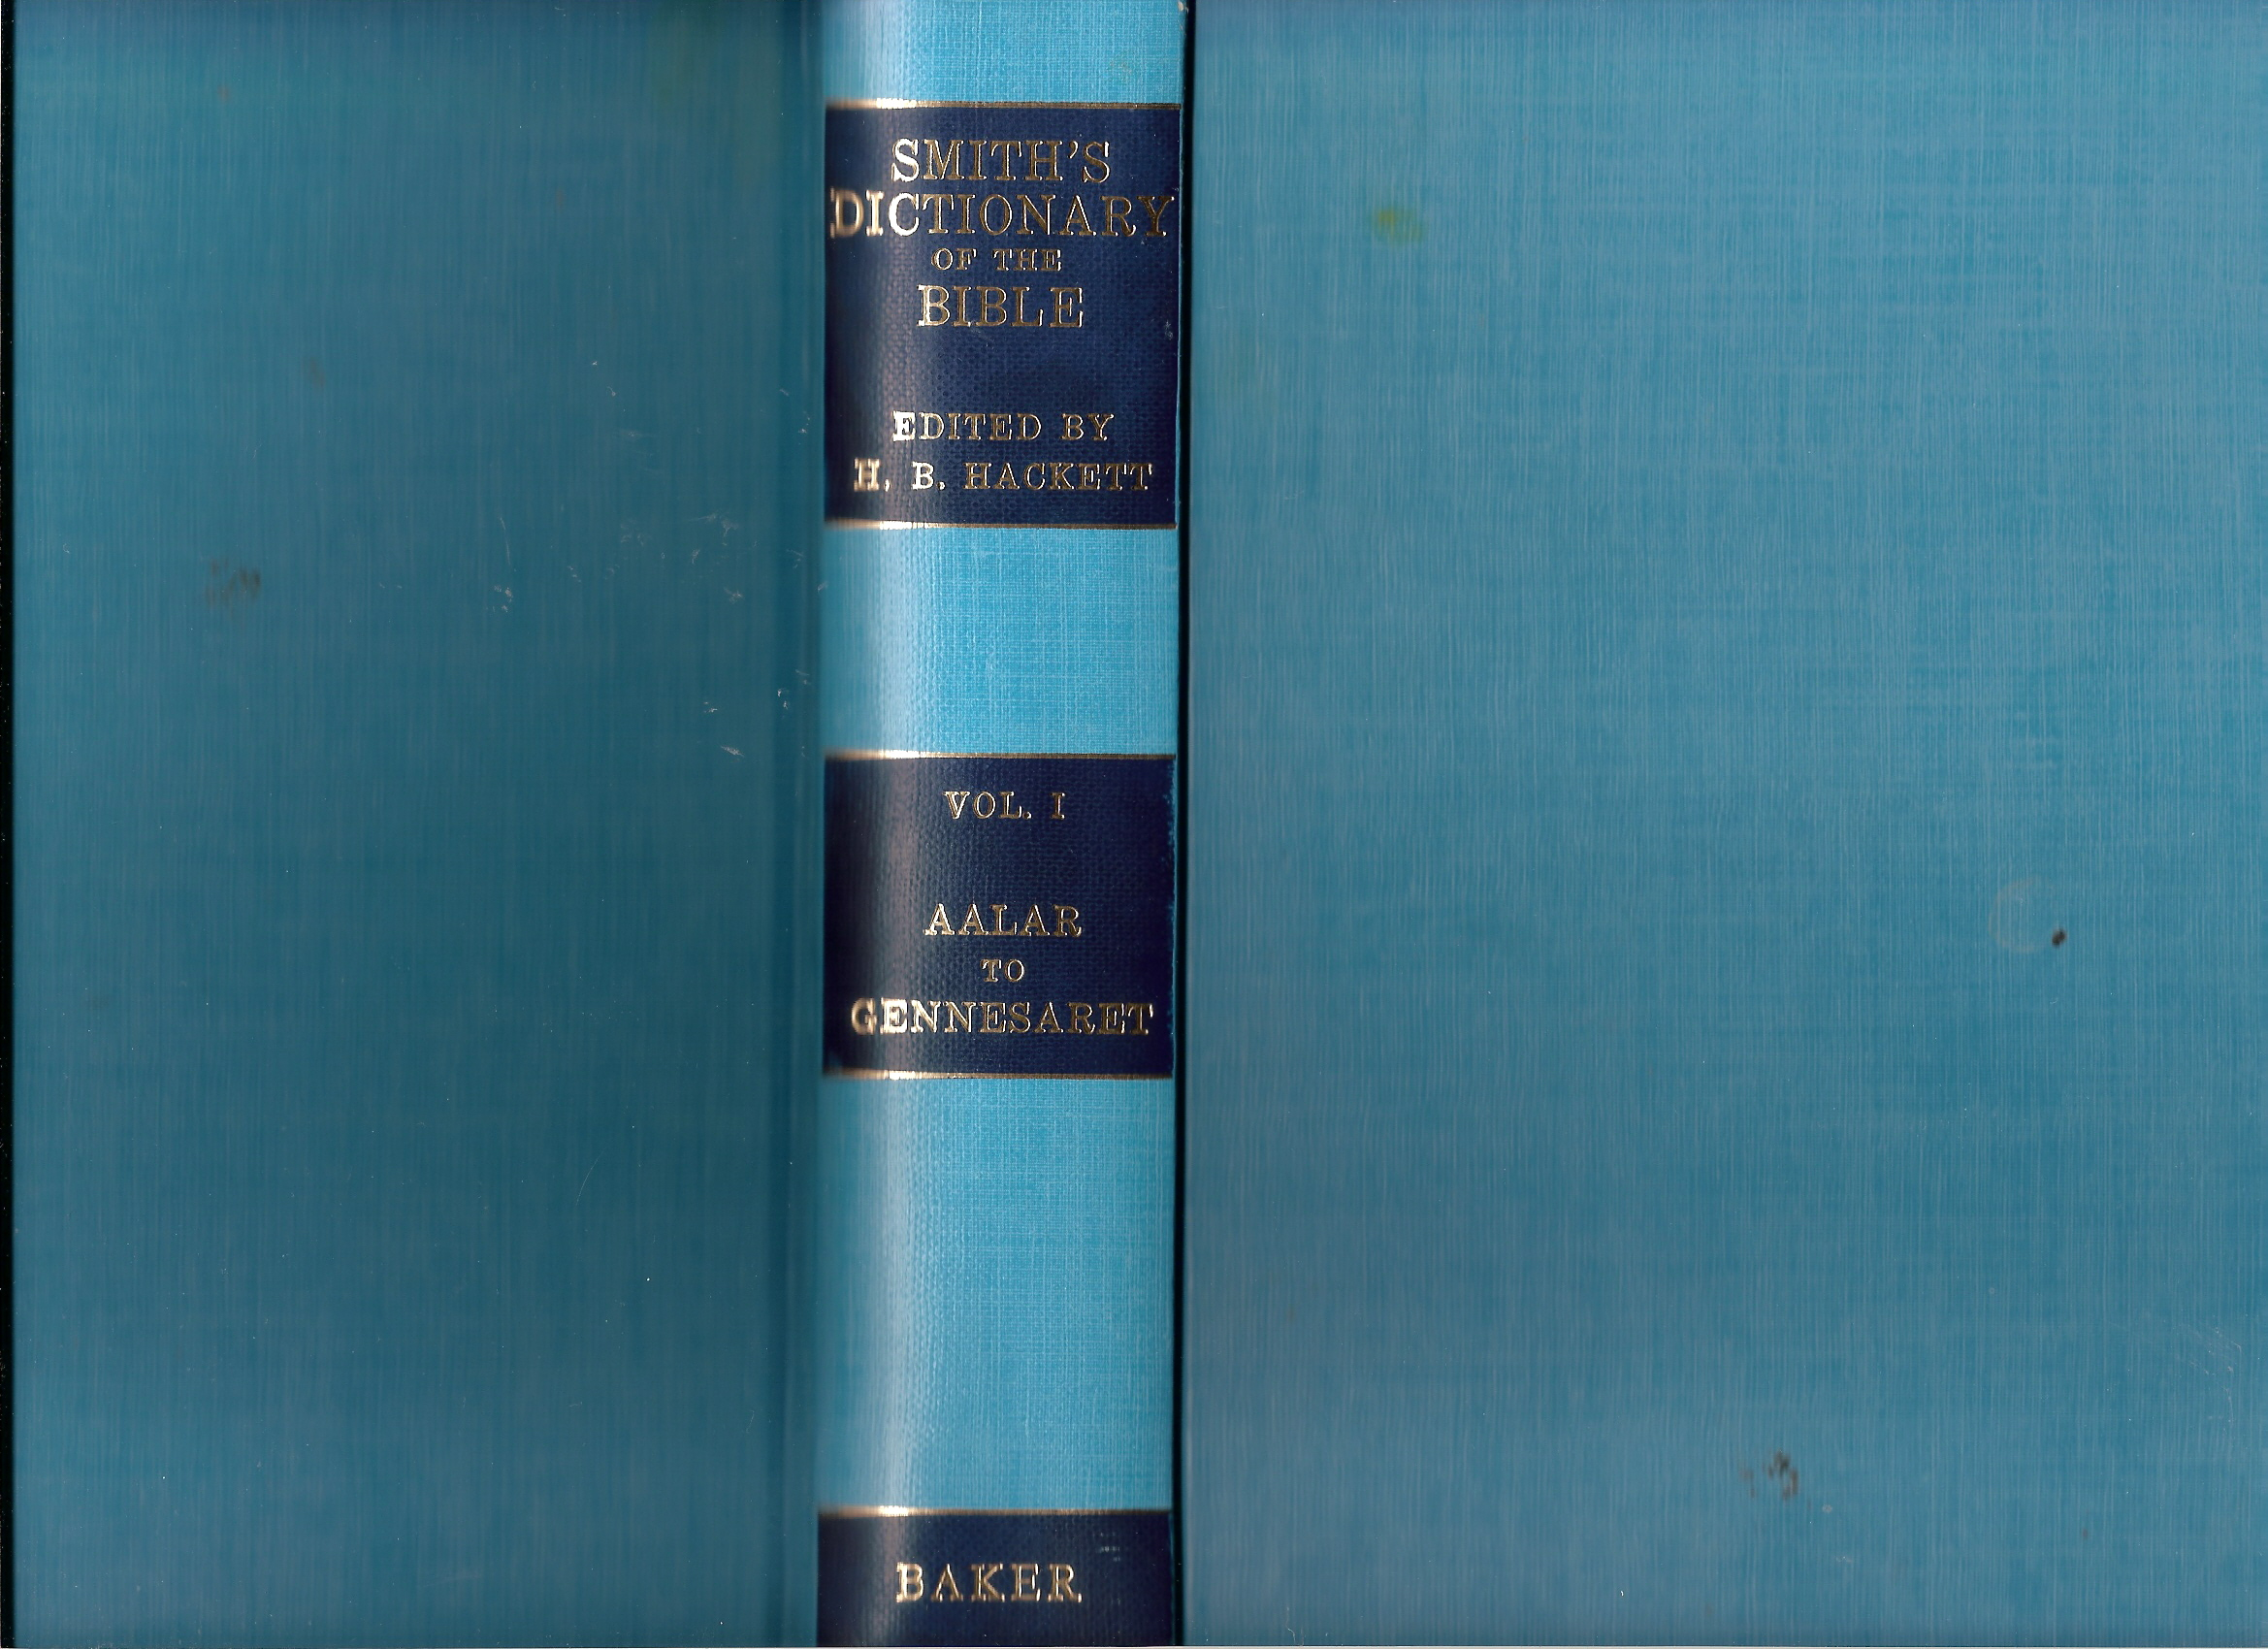 Smith's Dictionary of the Bible